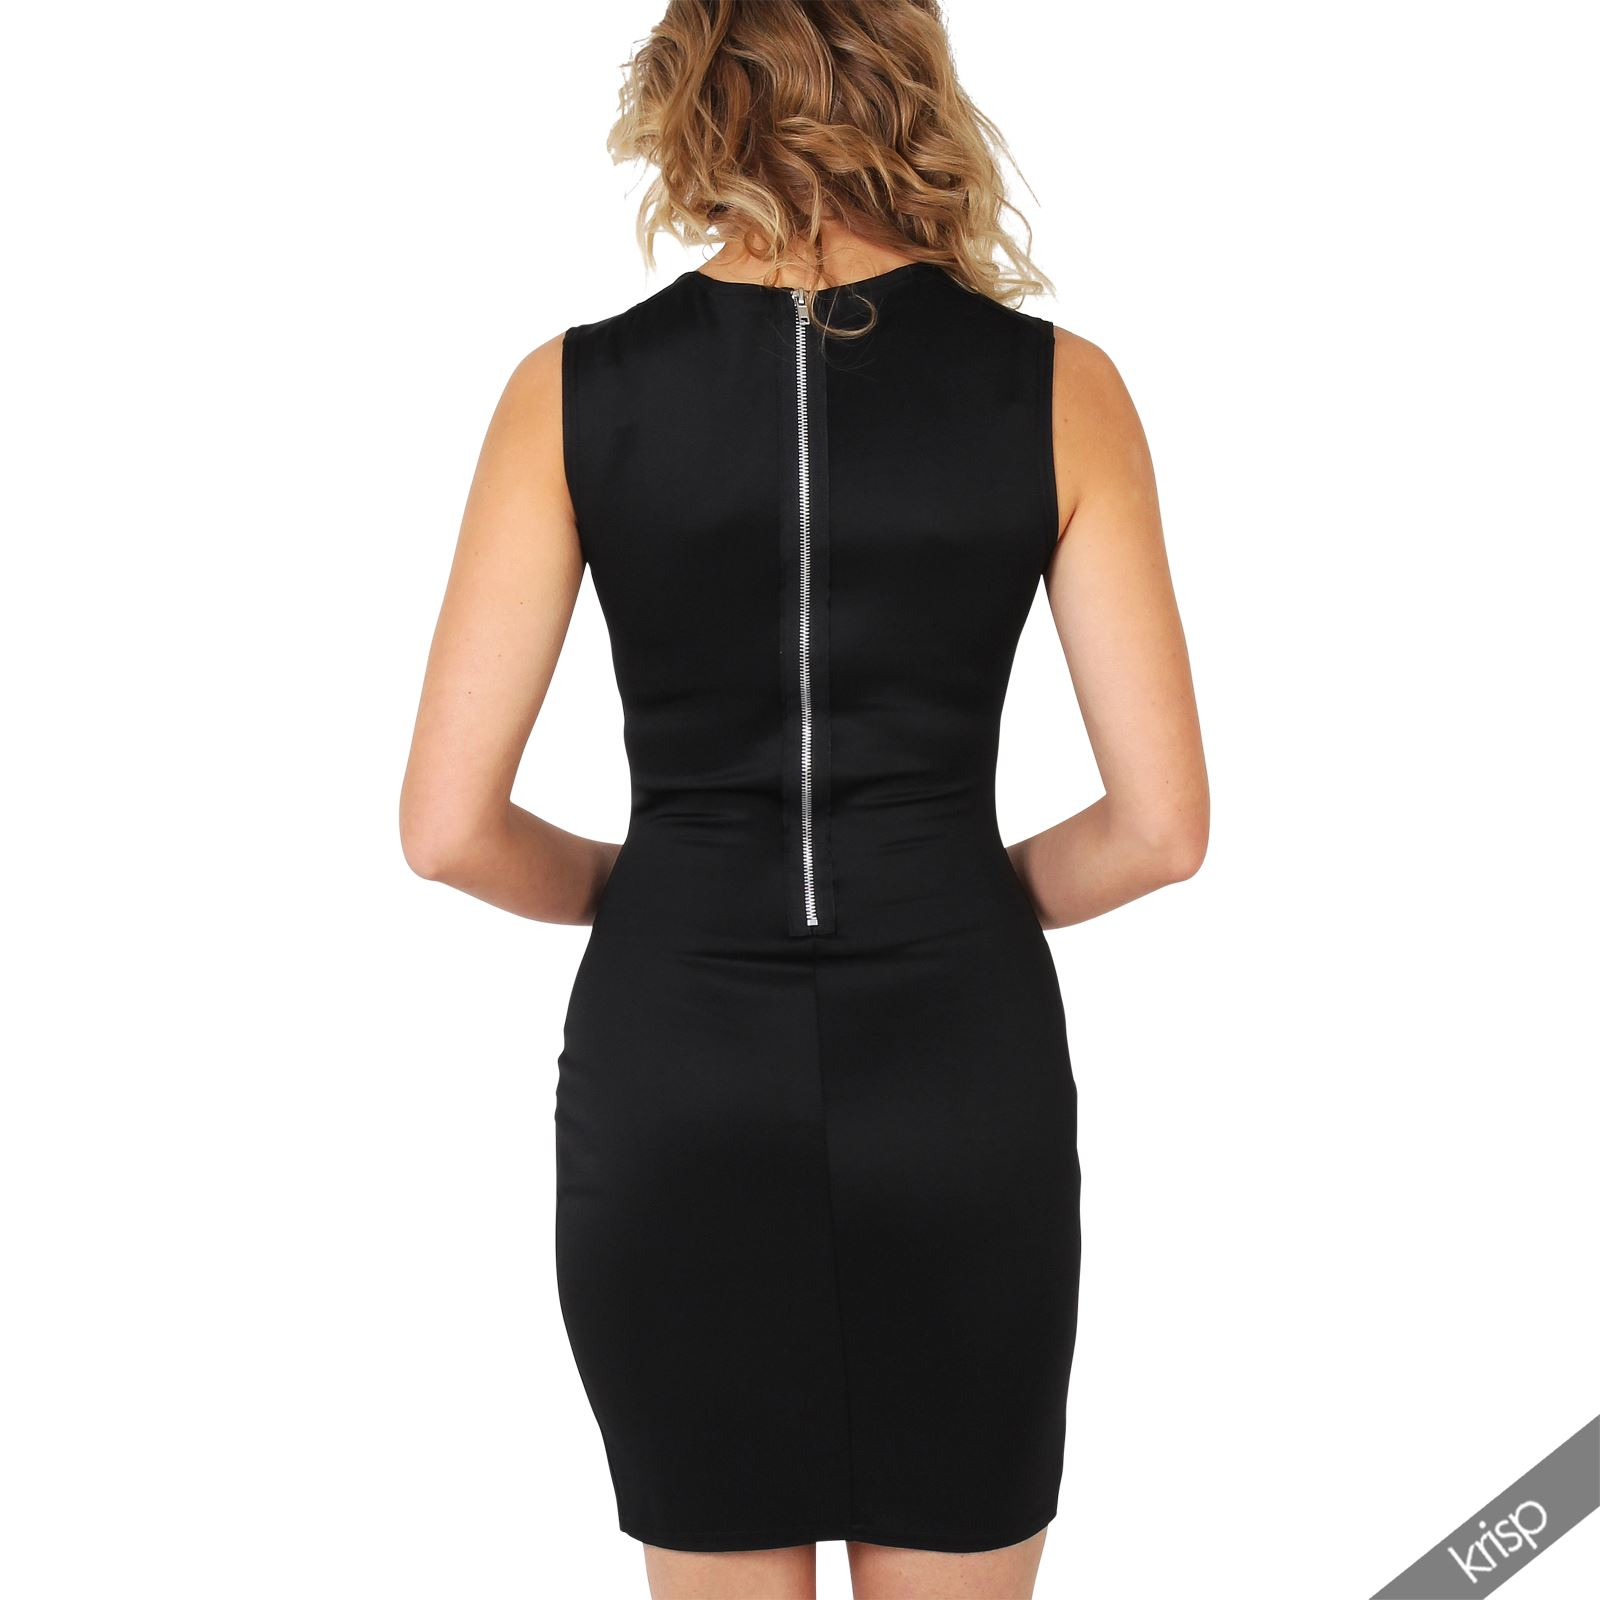 Ladies-Fashion-Bodycon-Dress-Sleeveless-Backless-Party-Fitted-Cocktail-Pencil thumbnail 4